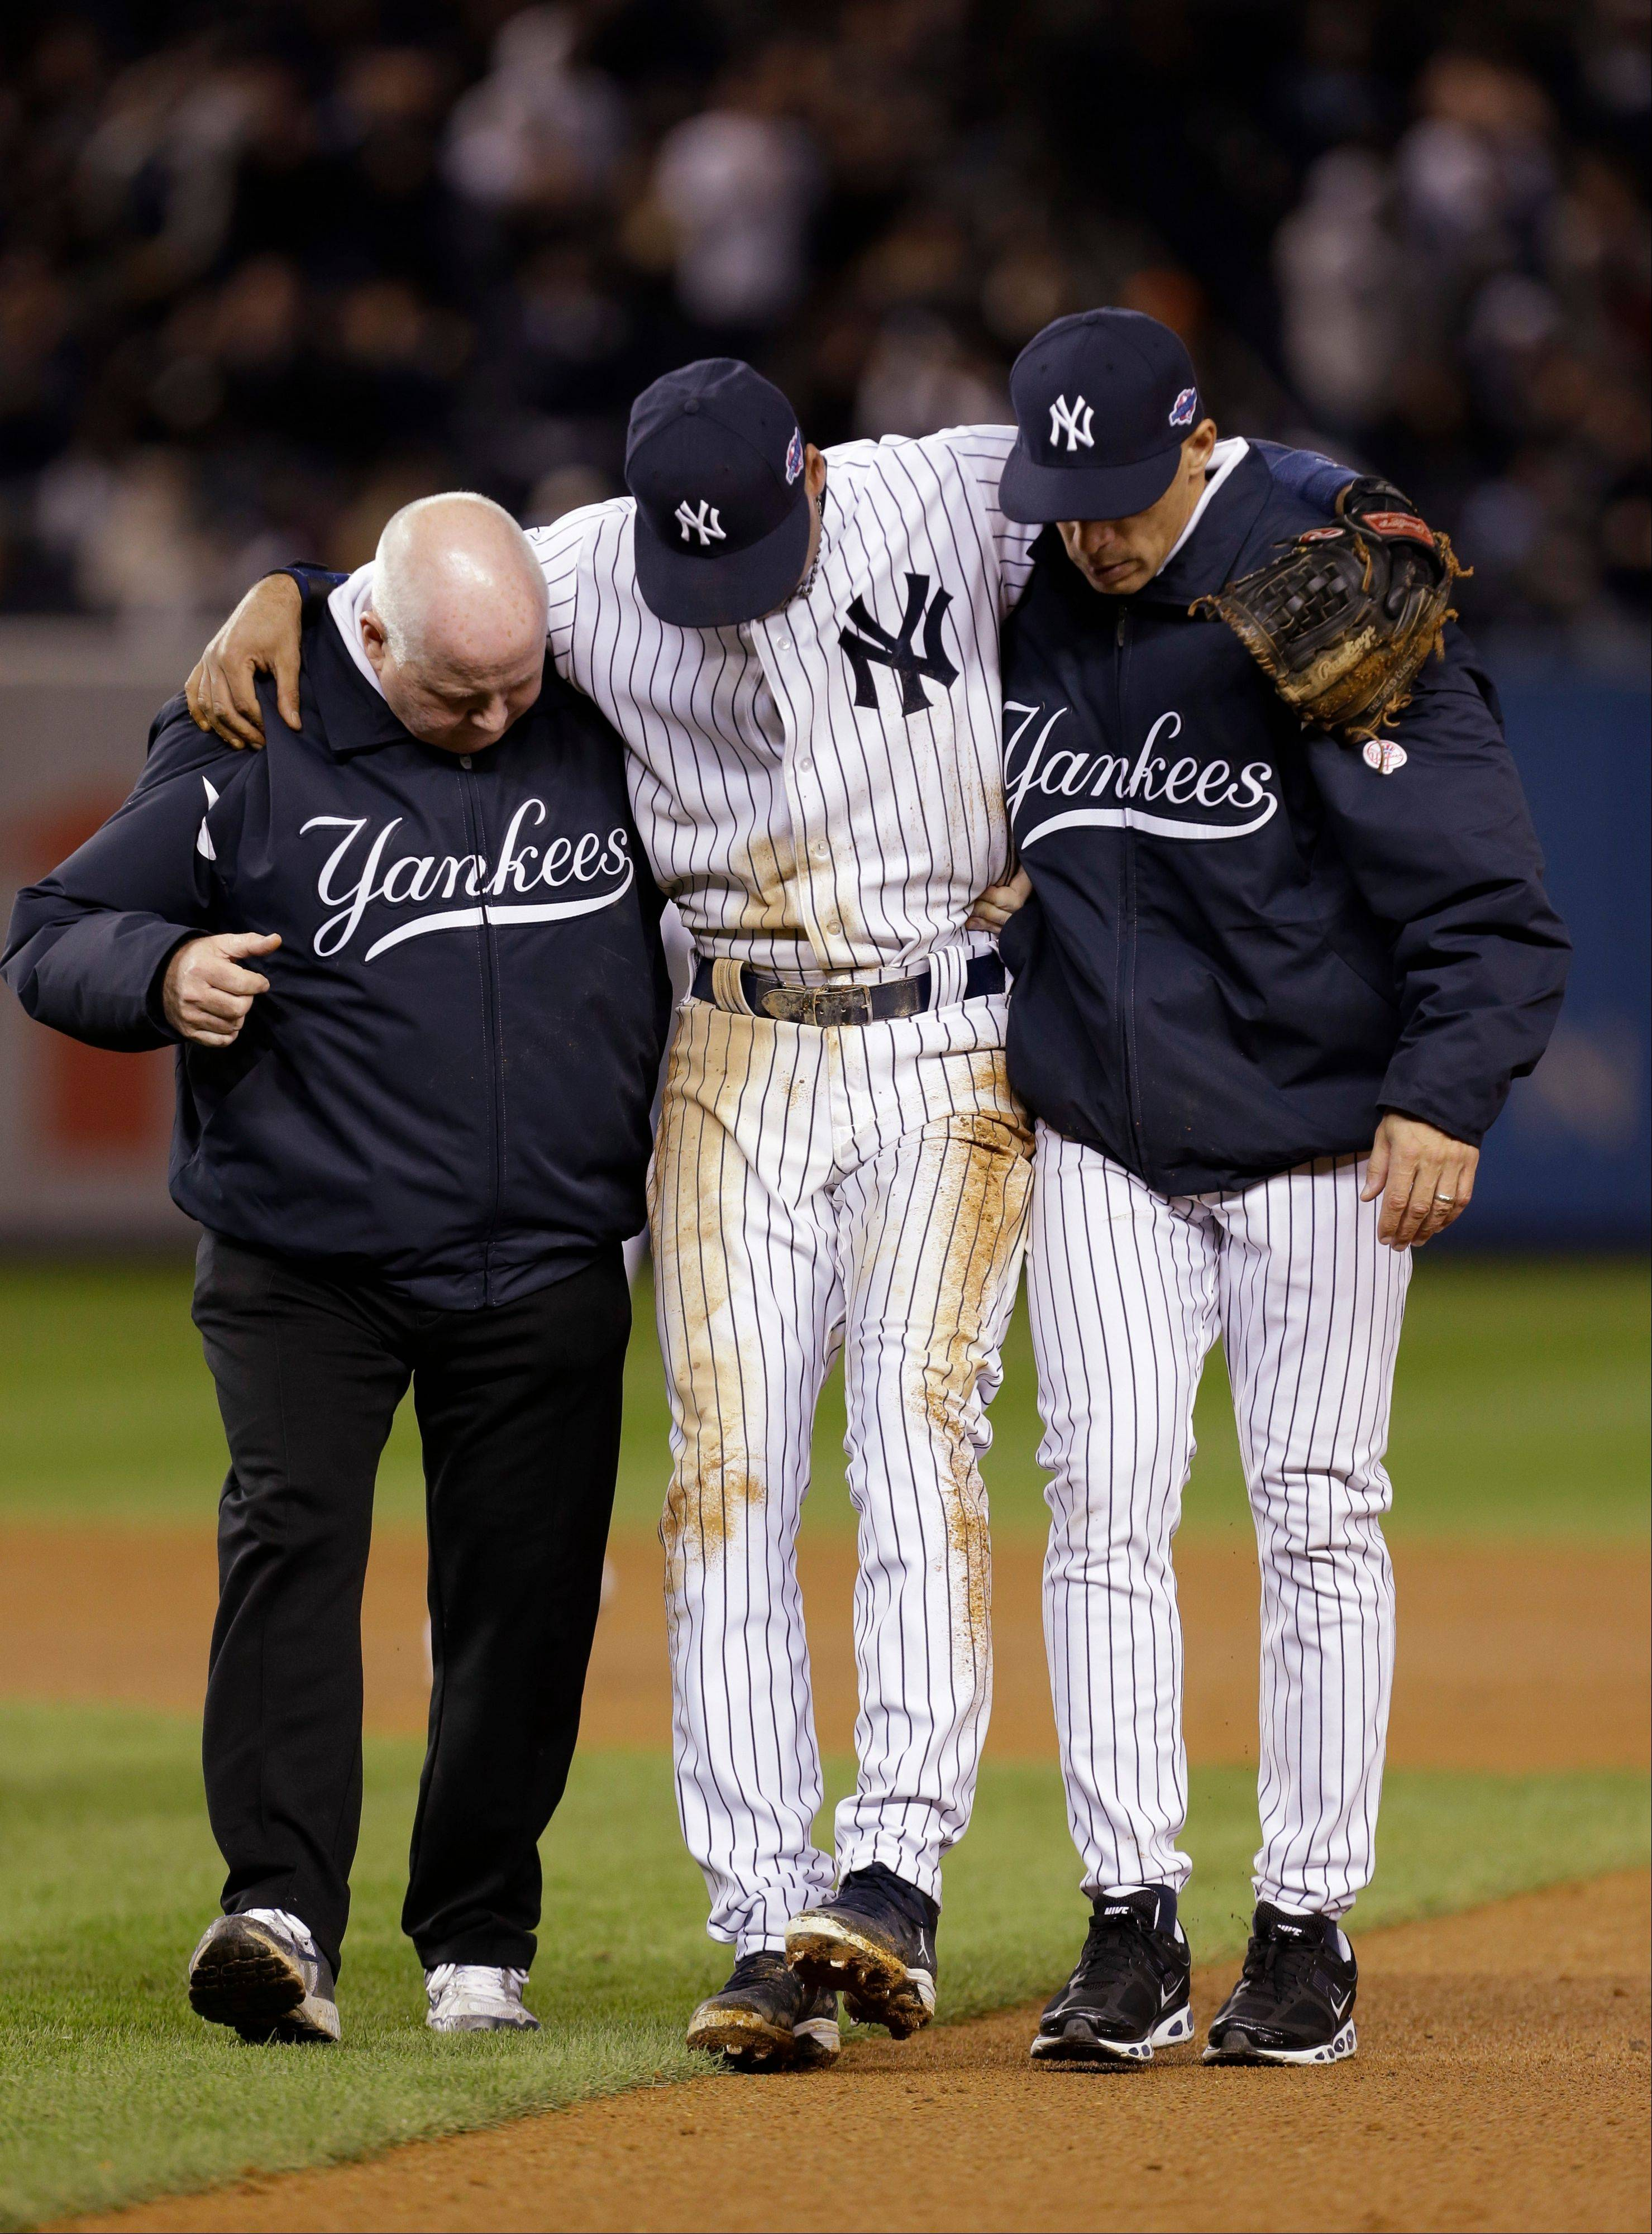 FILE - In an Oct. 14, 2012 file photo trainer Steve Donohue, left, and New York Yankees manager Joe Girardi, right, help Yankees' Derek Jeter off the field after he injured himself during Game 1 of the American League championship series in New York. Derek Jeter will likely join Alex Rodriguez, Mark Teixeira and Curtis Granderson on the New York Yankees' star-studded disabled list for the season opener against the Boston Red Sox on April 1, 2013. (AP Photo/Paul Sancya )